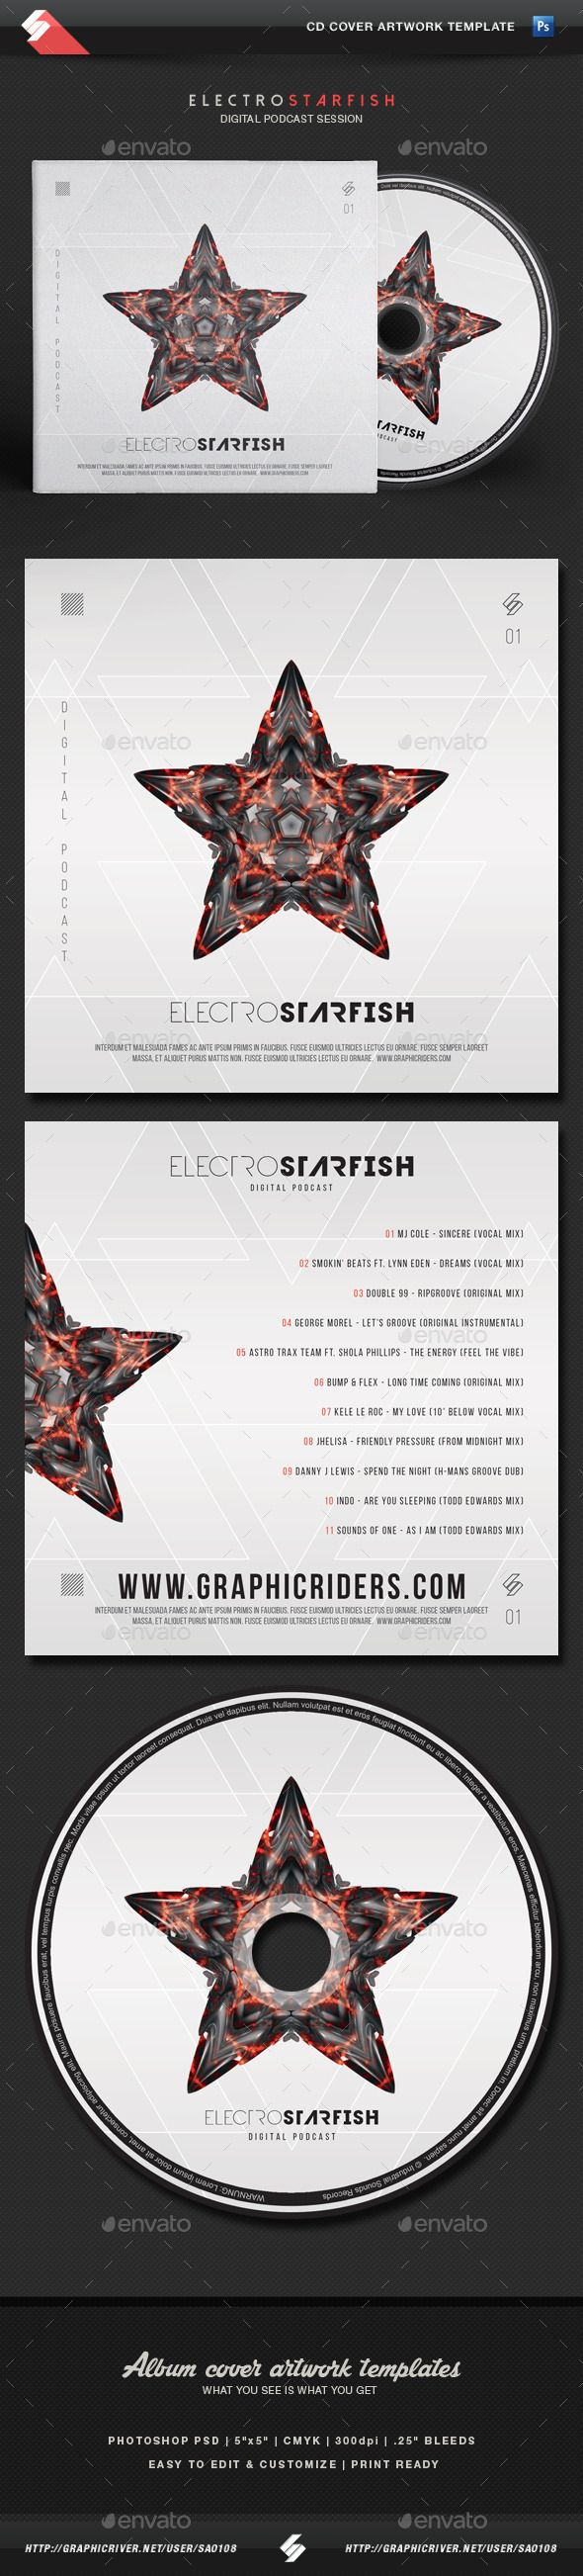 #Electro Starfish - CD Cover Artwork #Template - #CD & #DVD #Artwork Print Templates Download here: https://graphicriver.net/item/electro-starfish-cd-cover-artwork-template/11646467?ref=alena994